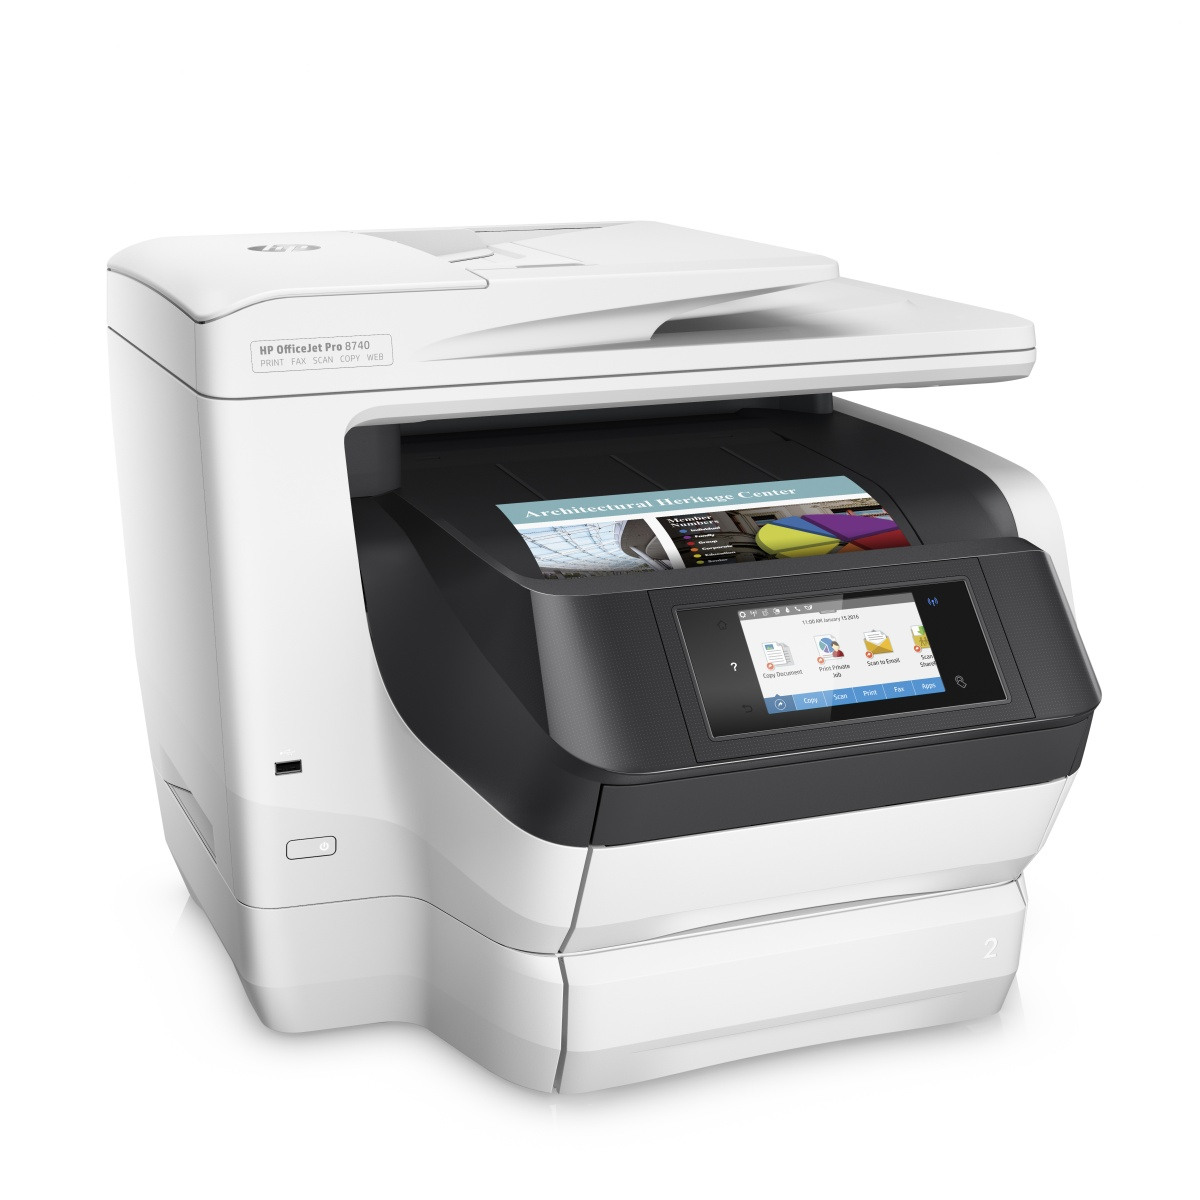 HP OfficeJet Pro 8740 All-in-One